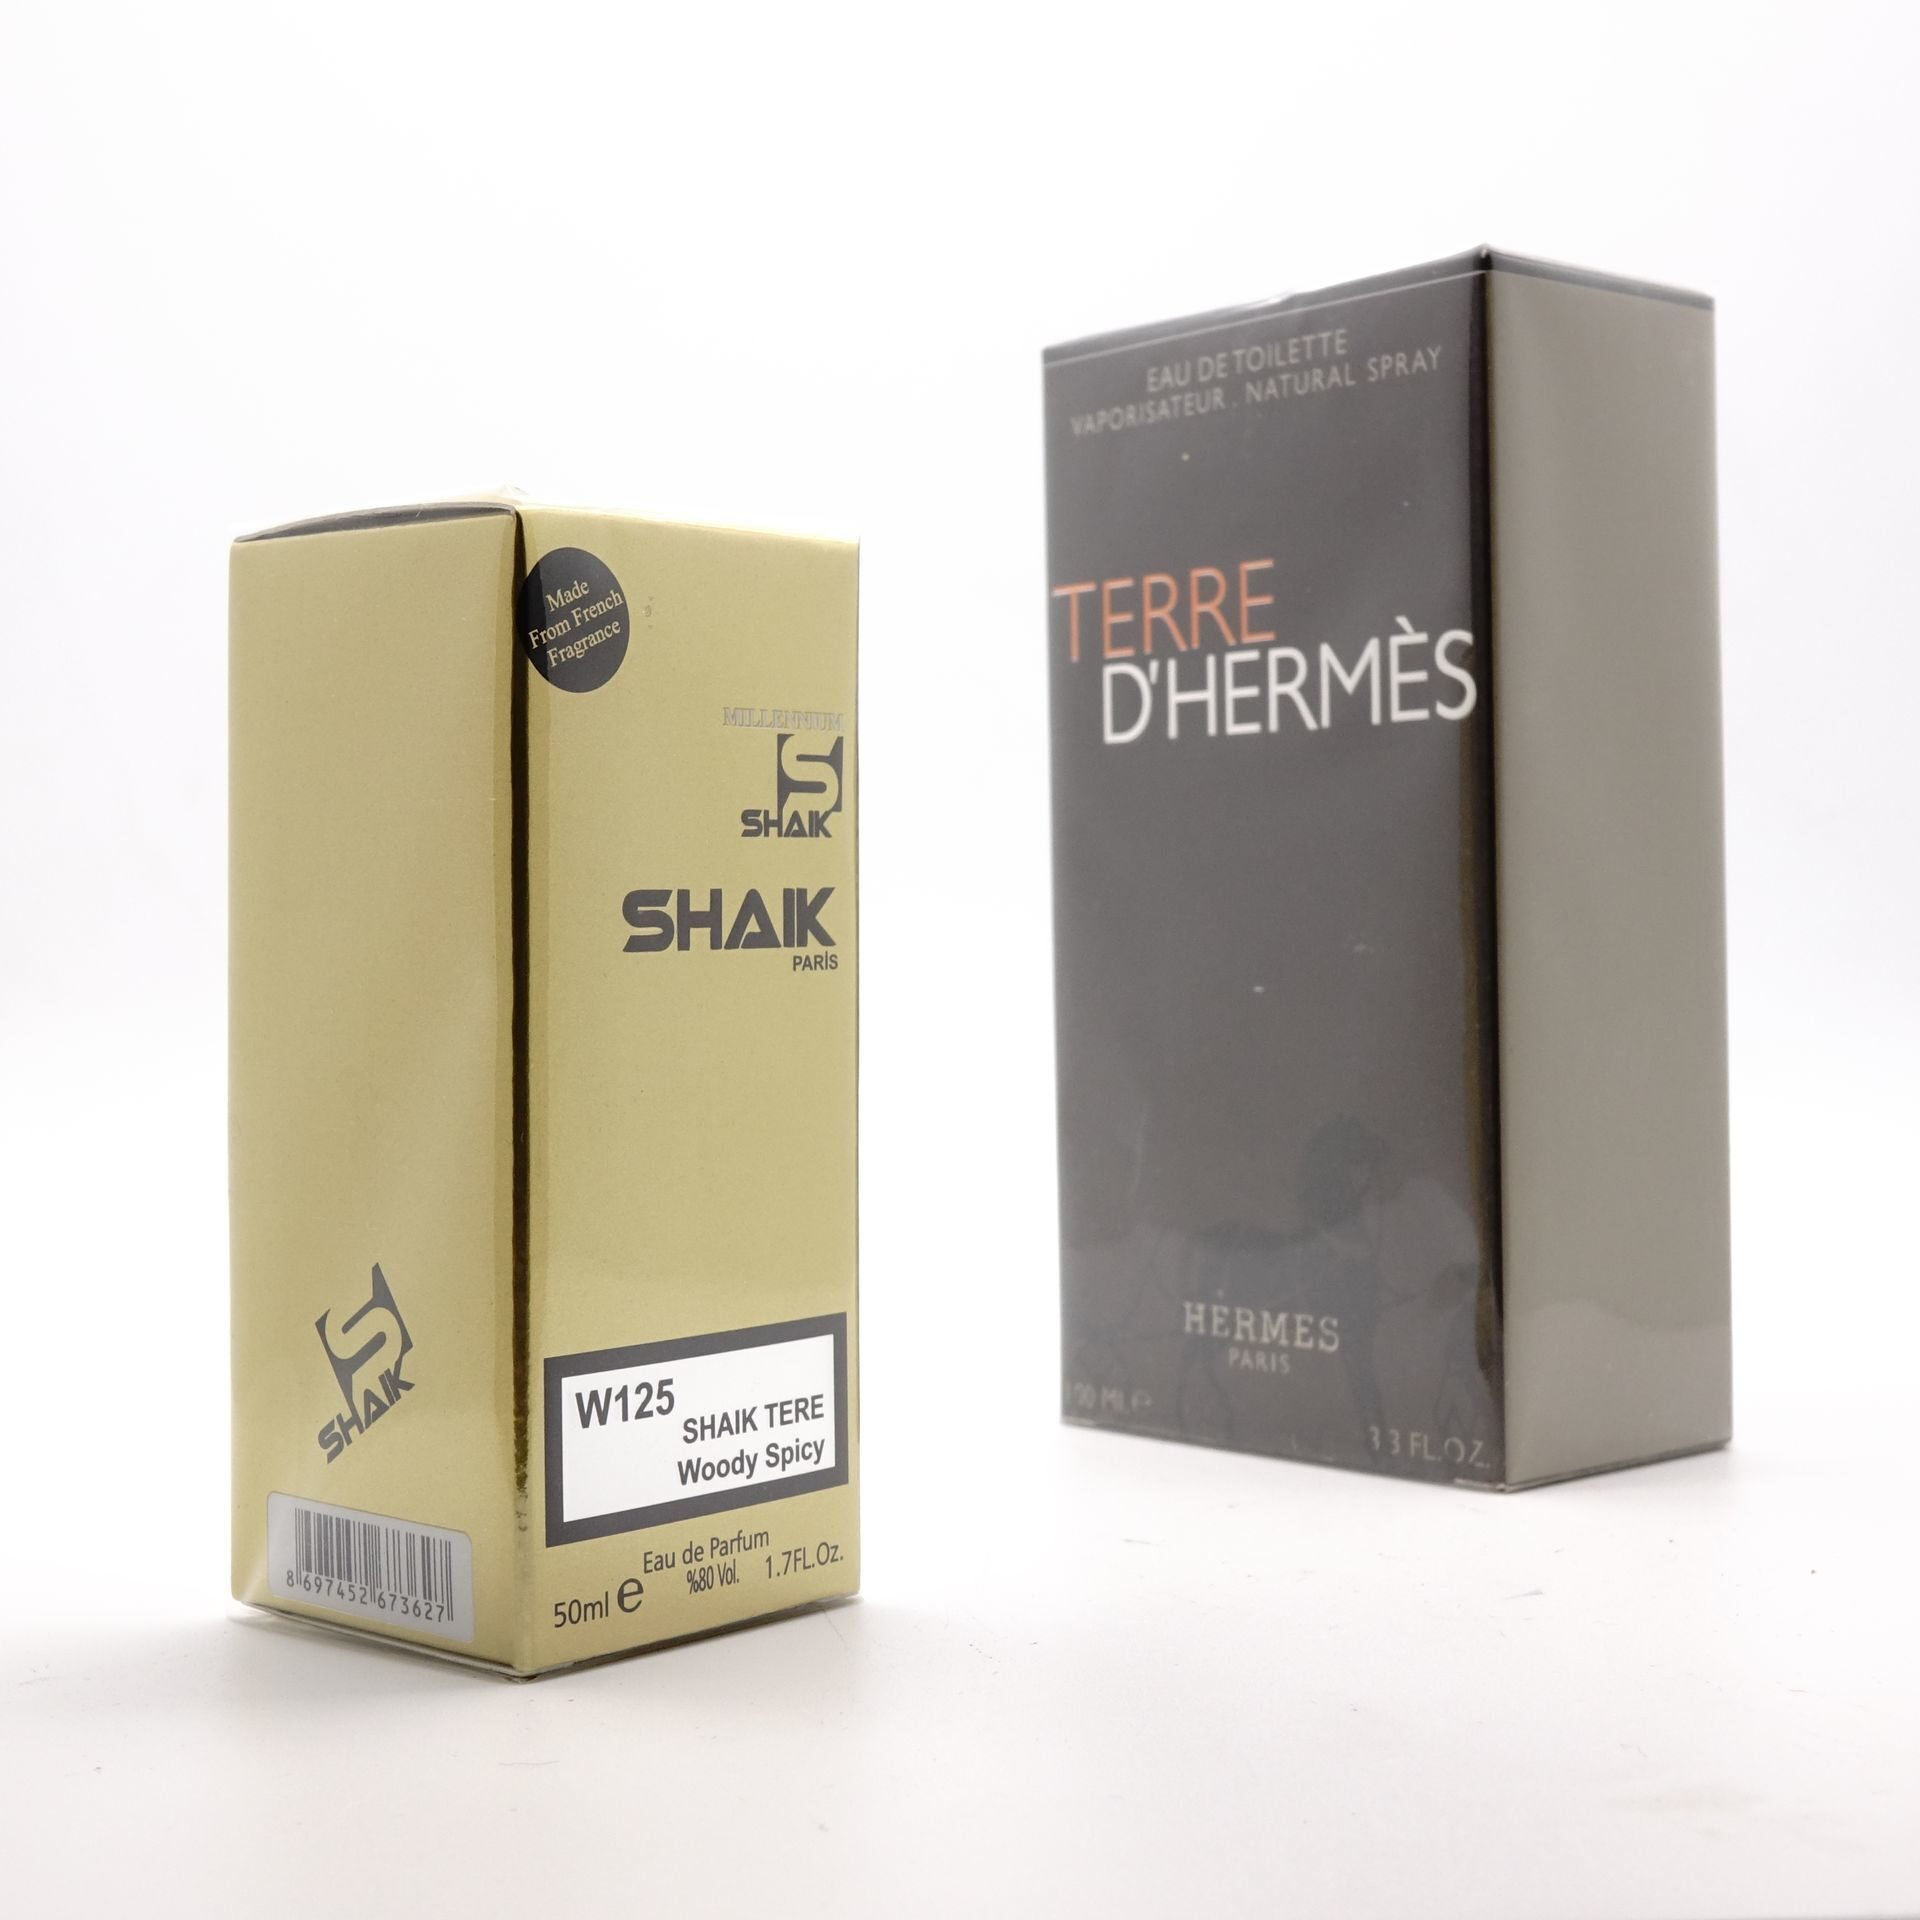 SHAIK M 125 (HERMES TERRE D'HERMES FOR MEN) 50ml